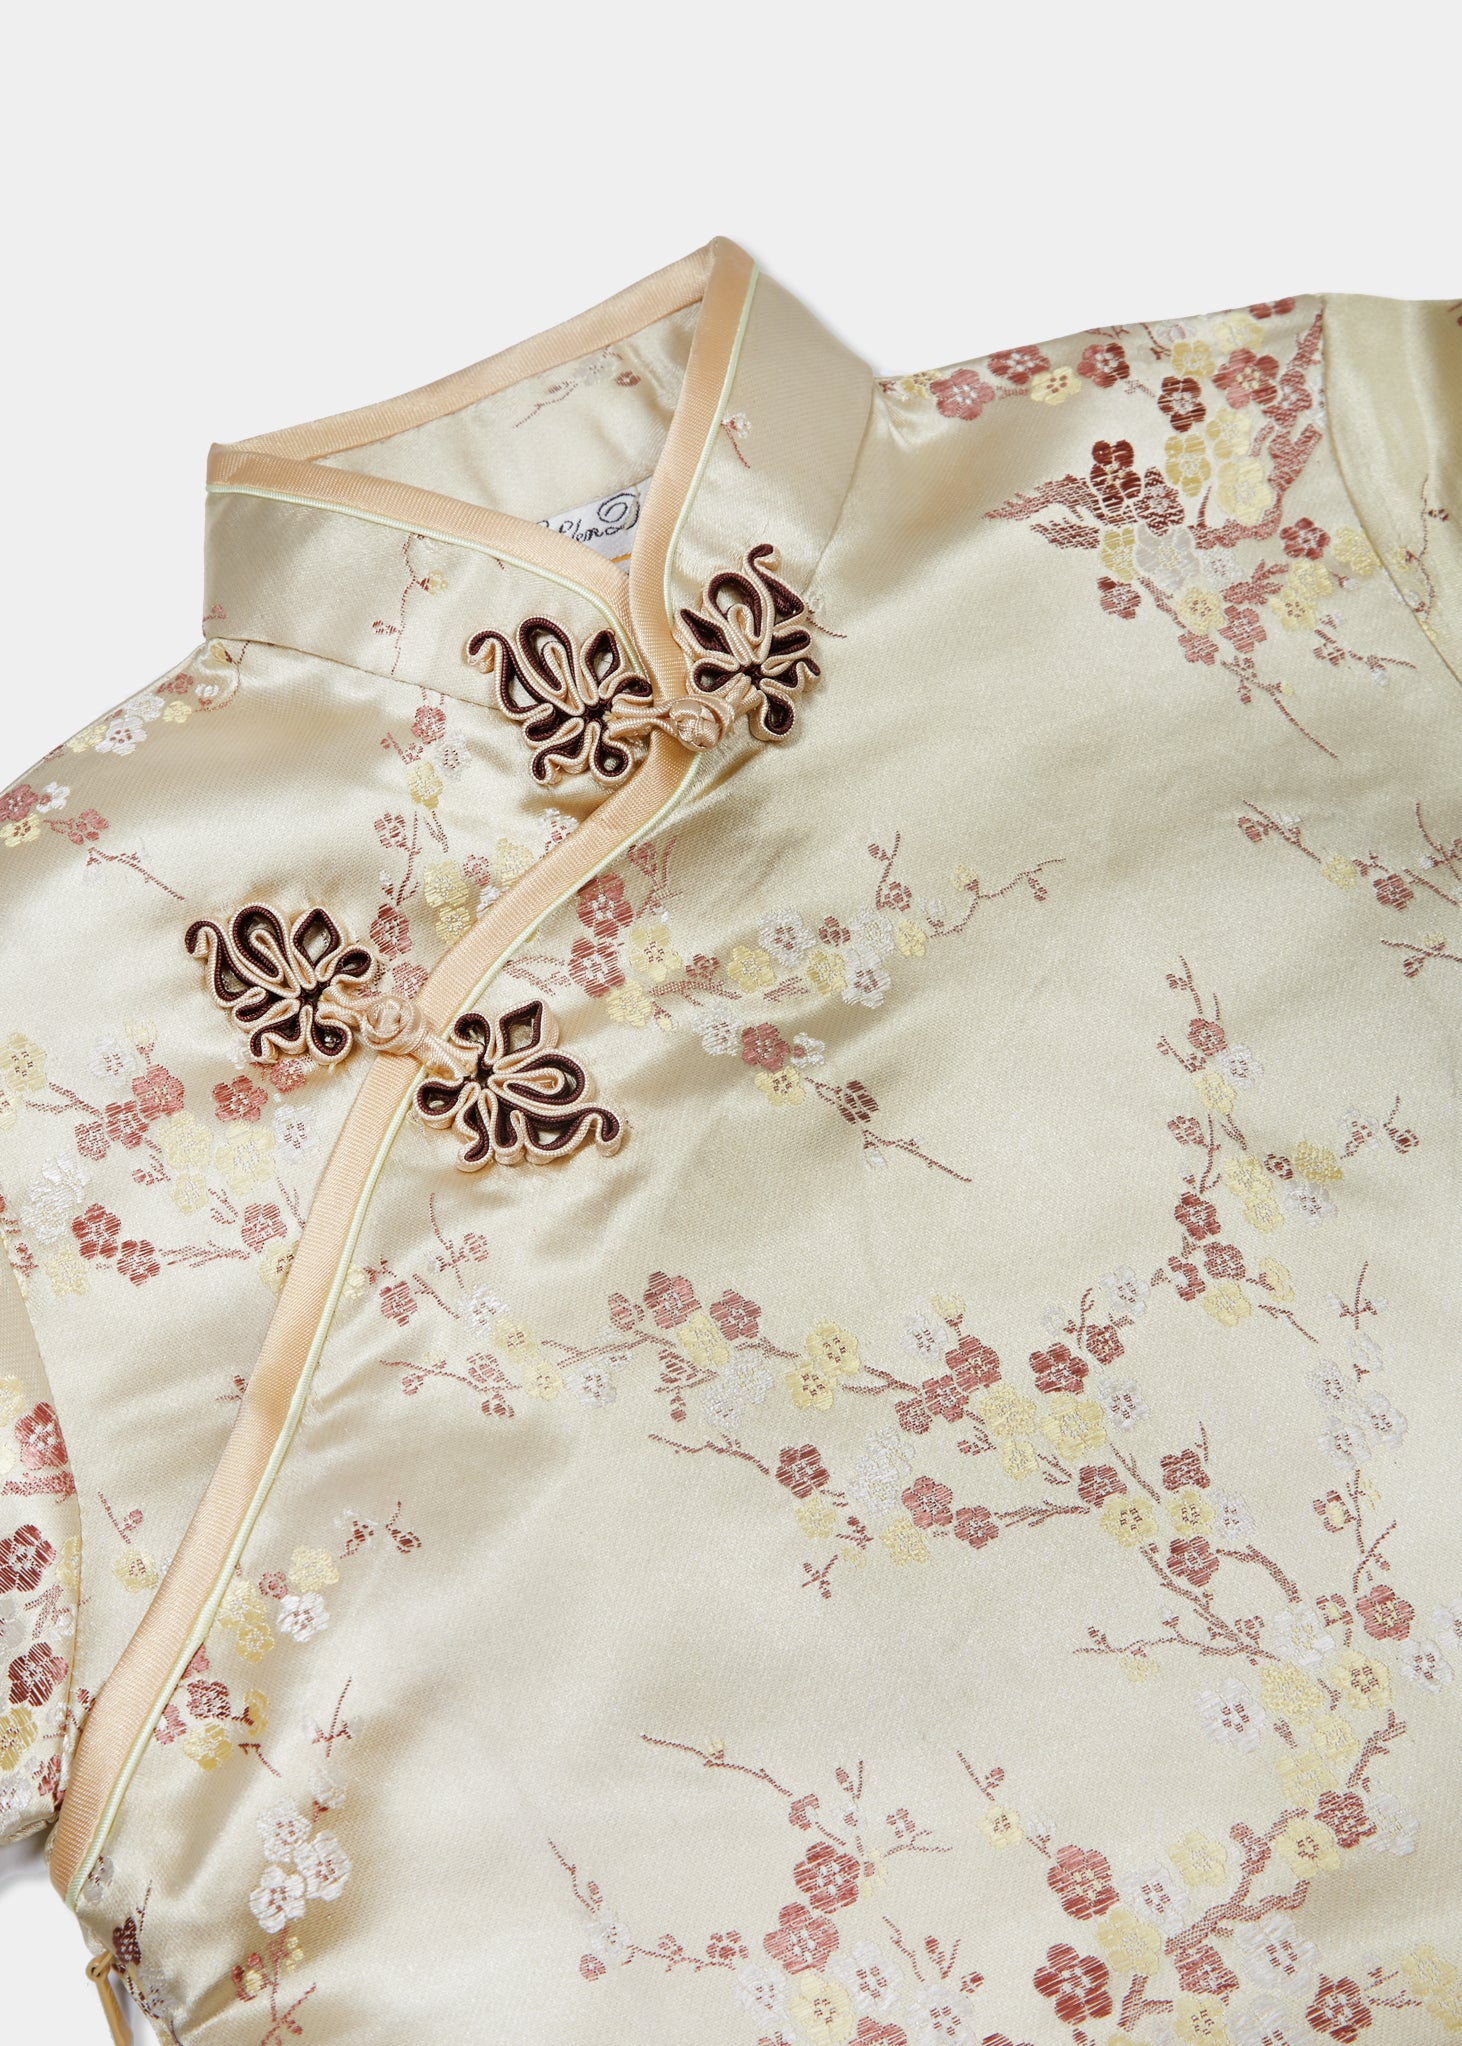 Bound edge mandarin collar and aysmmetric fastening which closes with hand stitched flower and knot frog fastenings in an accent shade. Short sleeves, side zip, curved hem into modest side splits with contrast binding and accent piping.